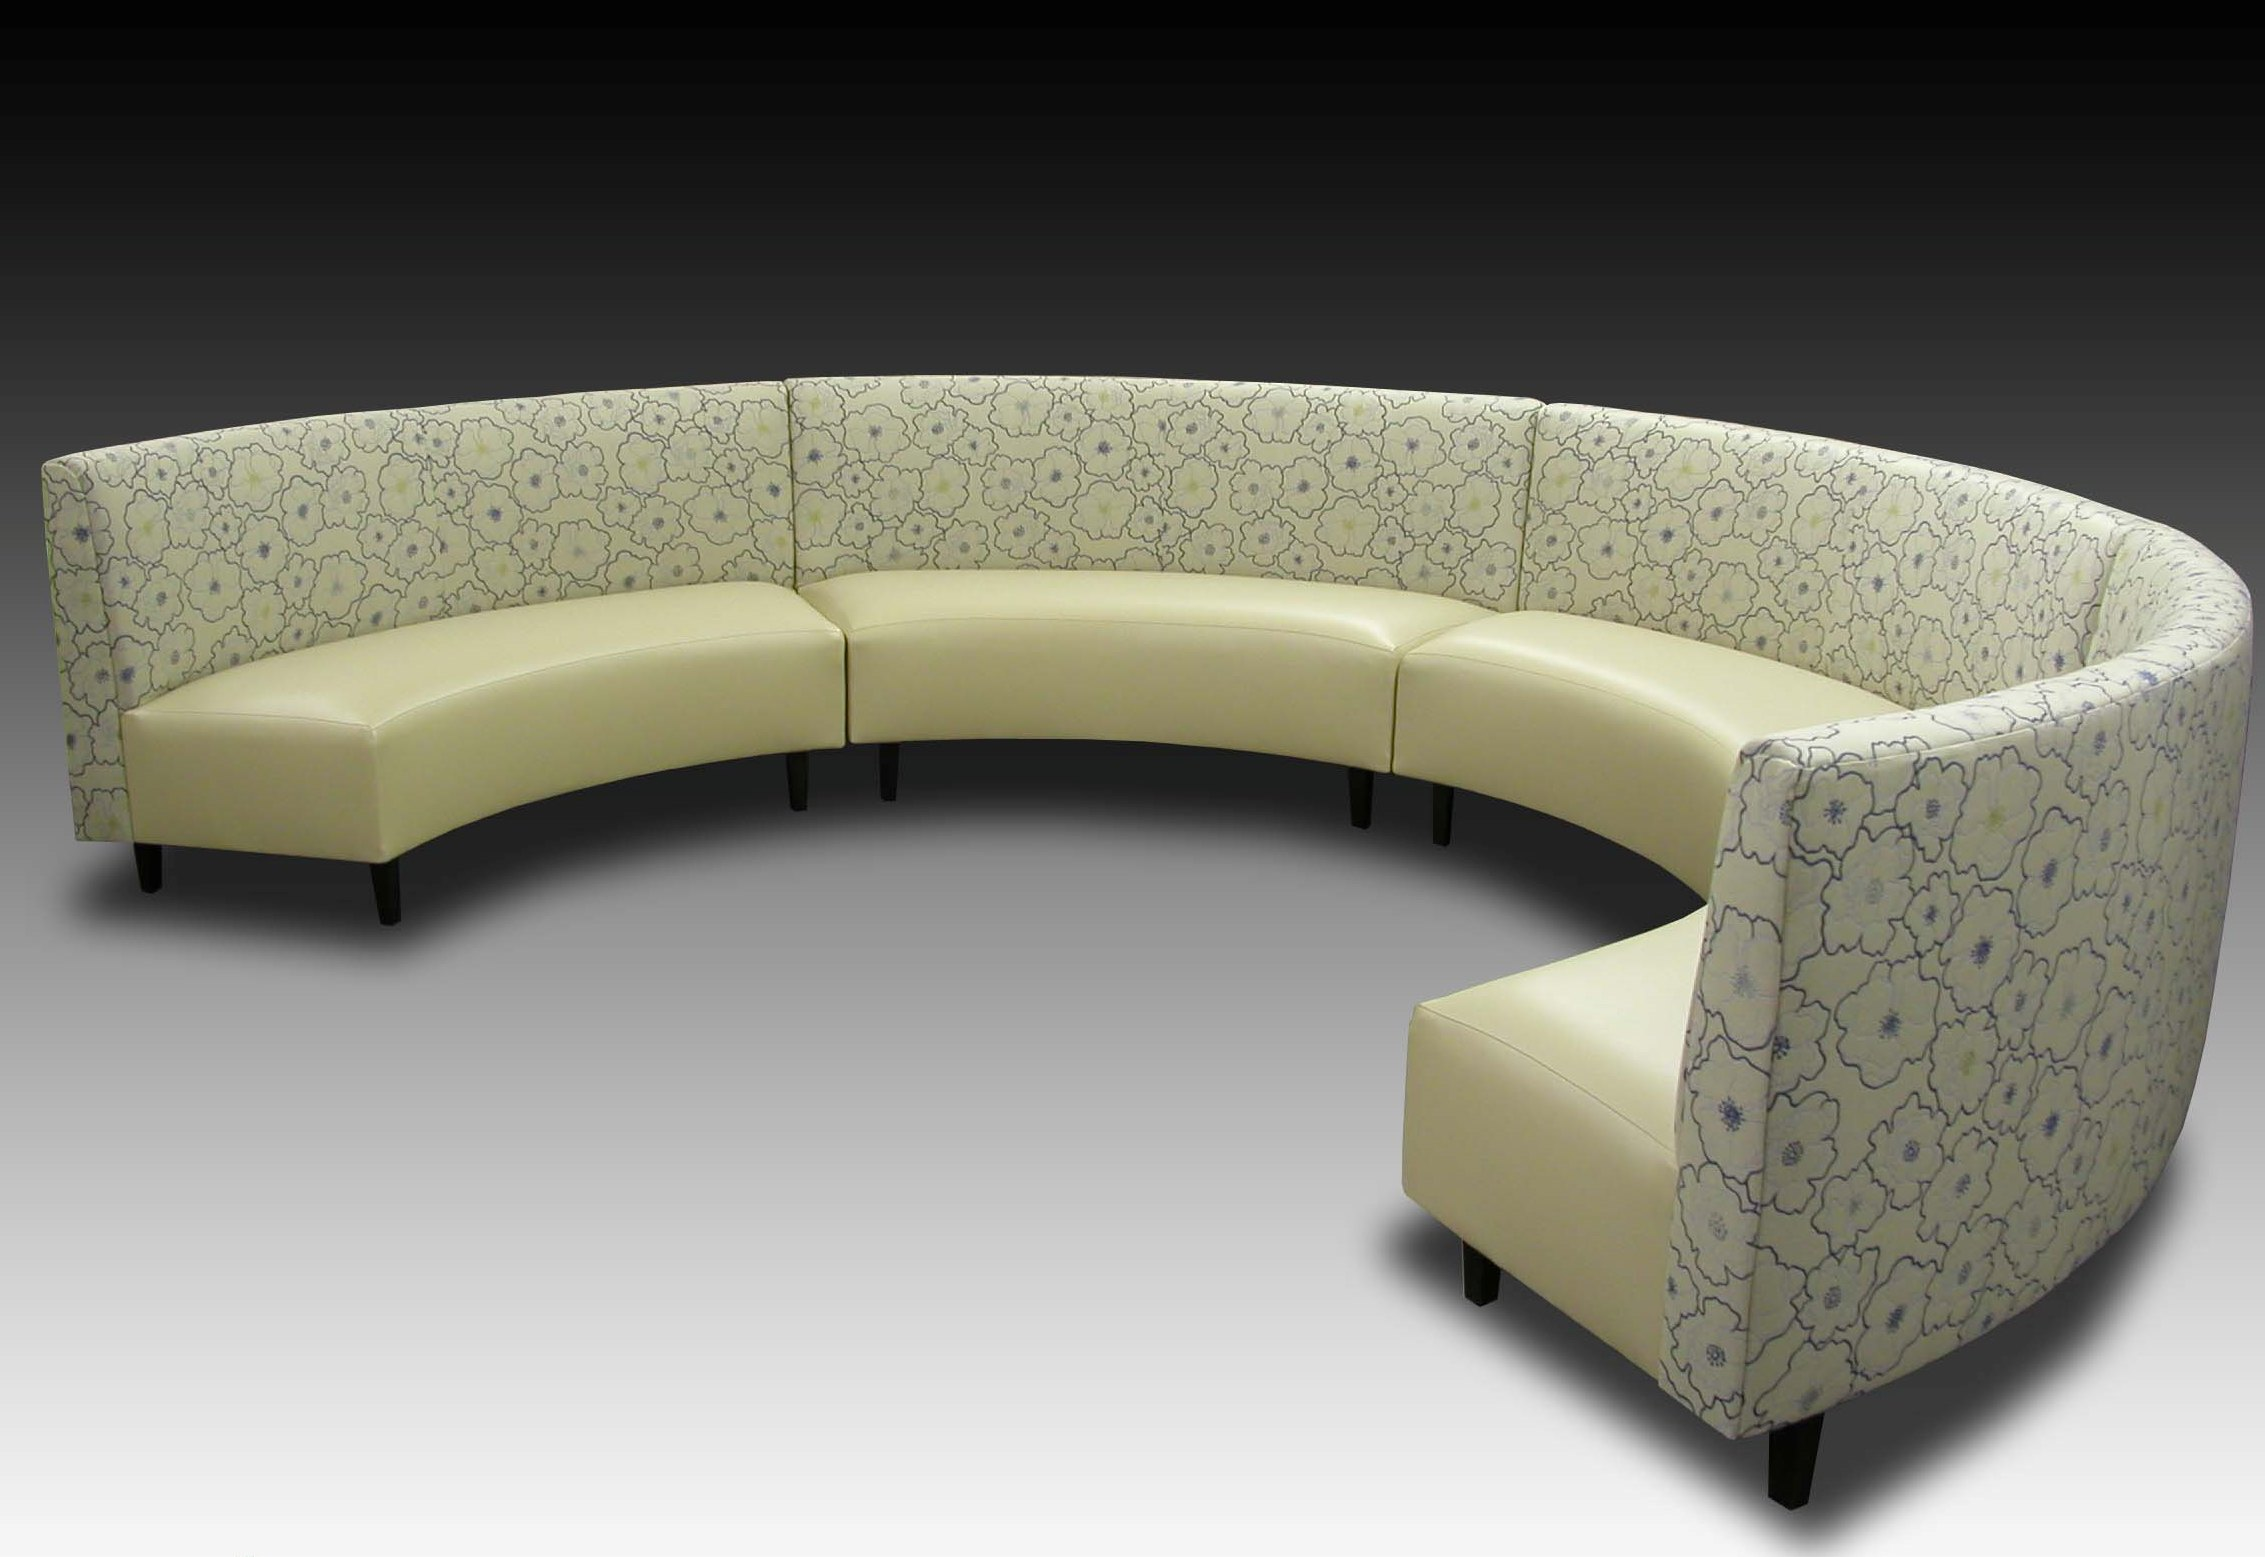 Silverstone Business Upholstery The Upholstery Solution Services